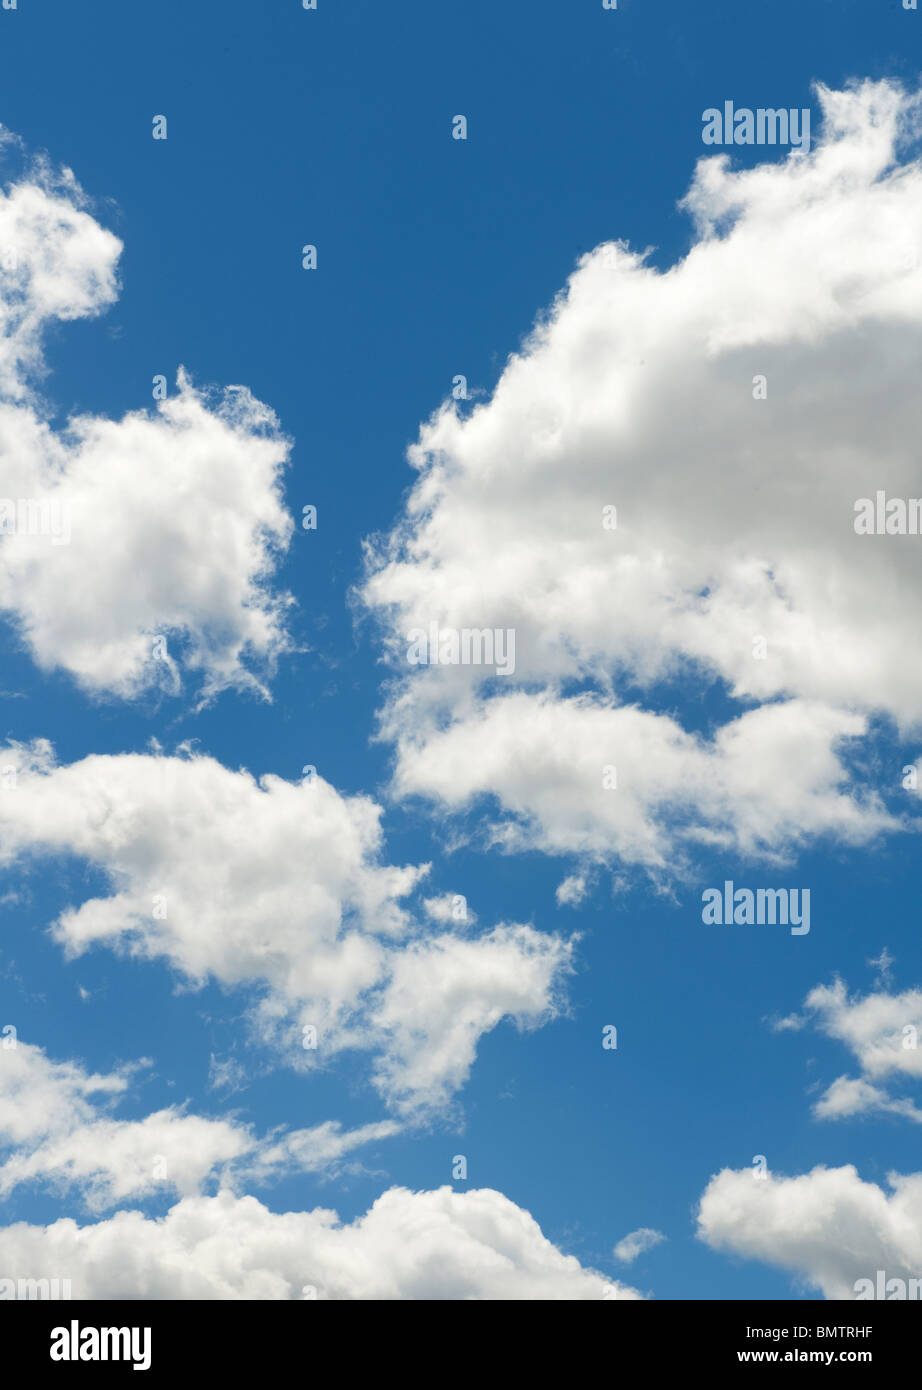 Blue skies with clouds - Stock Image